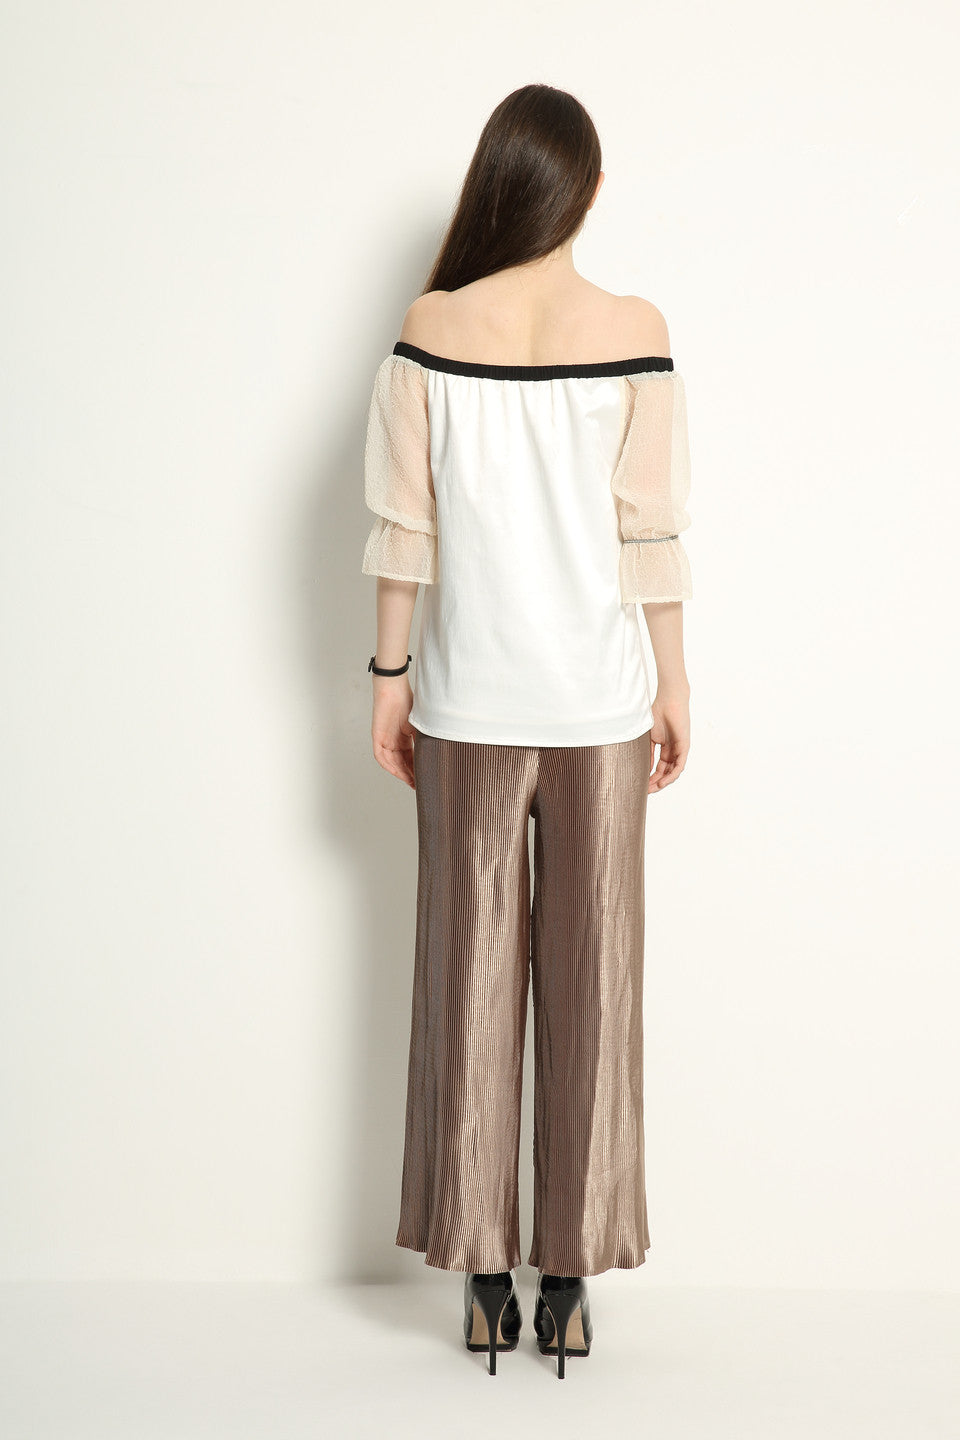 Metallic Pleat Trousers - GlanceZ   - 5